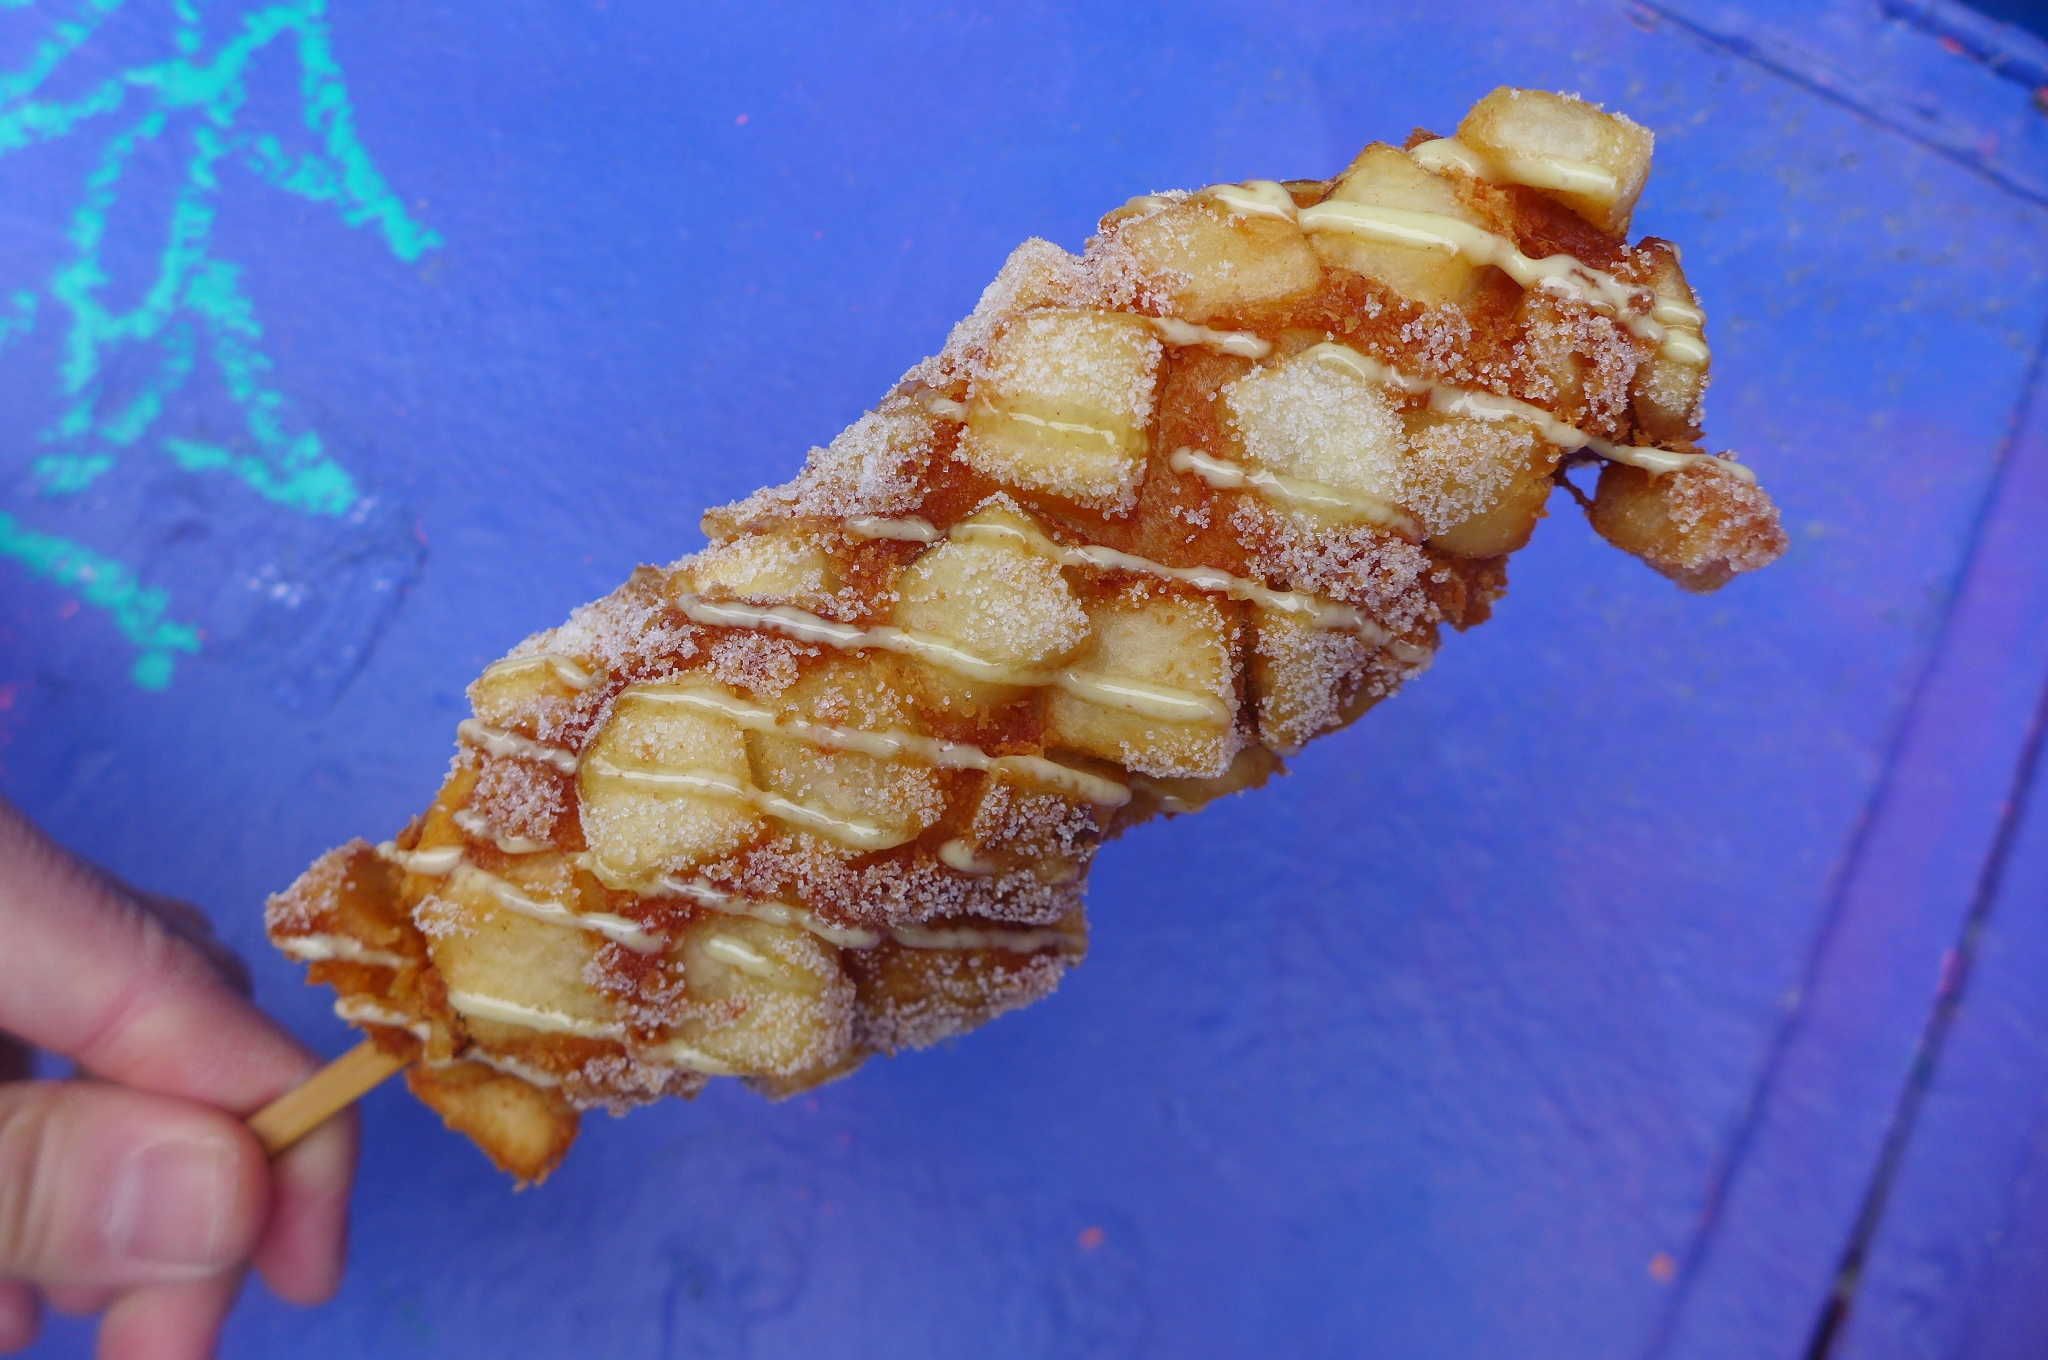 A corn dog with potato cubes in the batter held up against a blue background